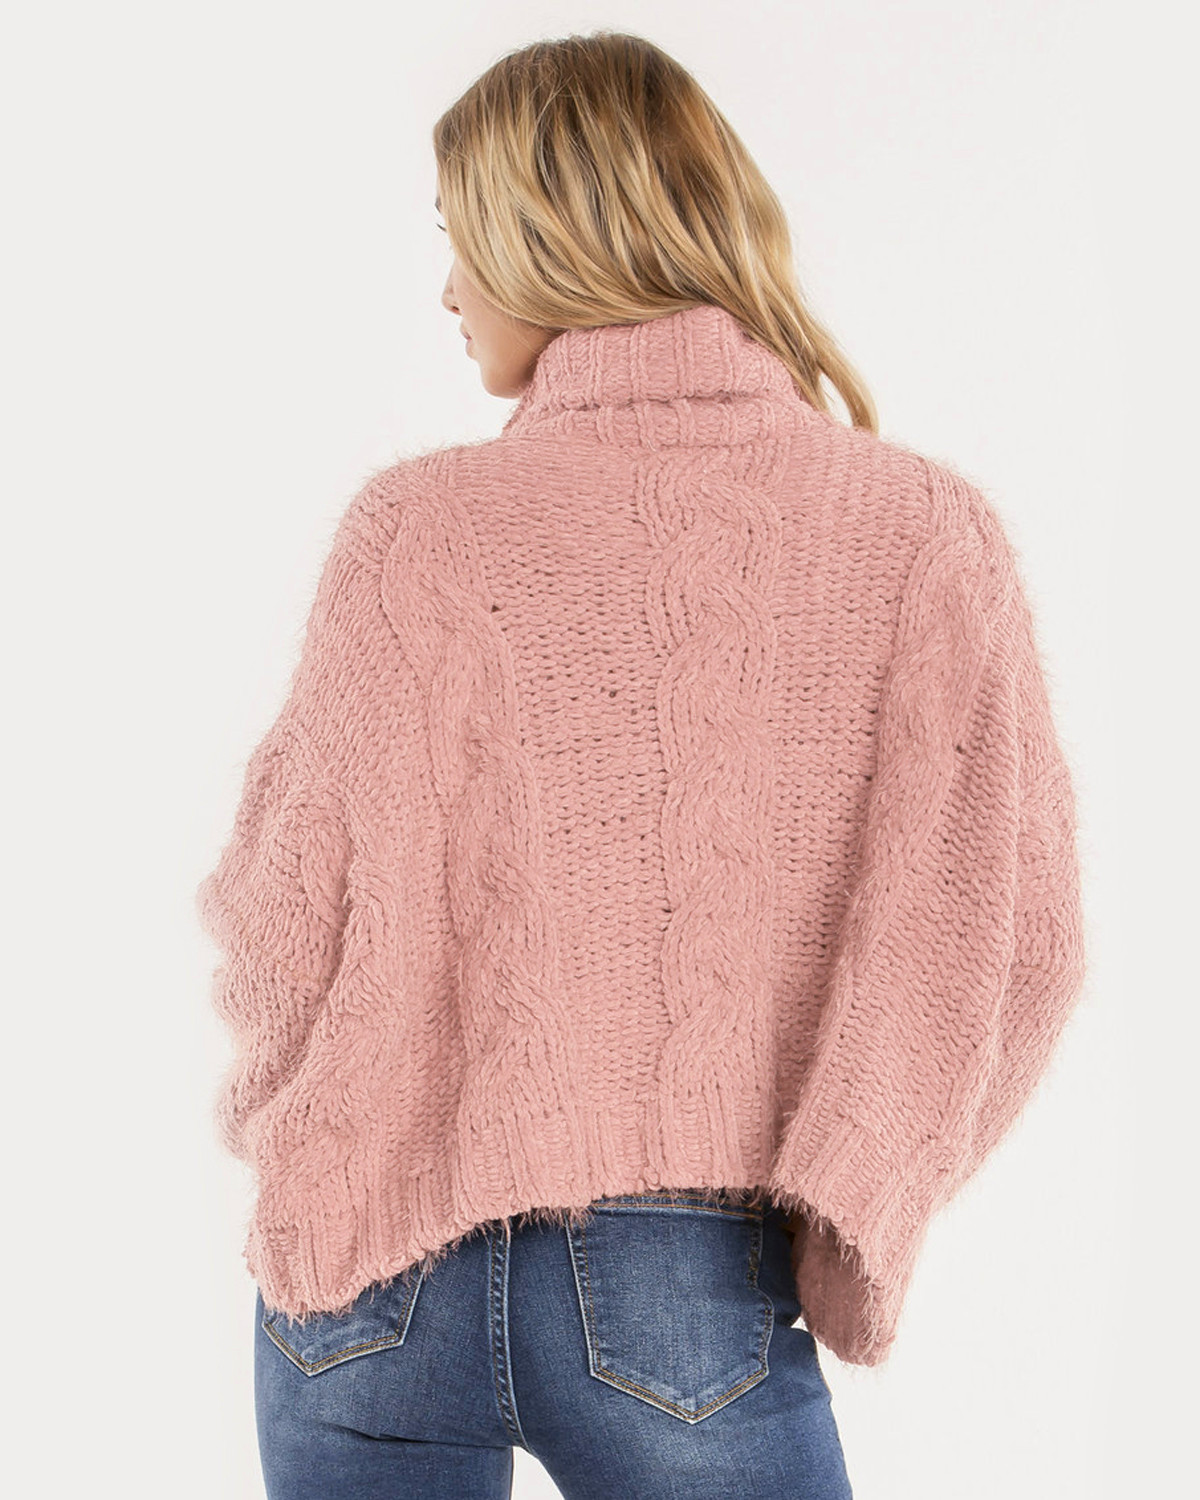 the room sweater image l products light pink marble dressing wallingford full from by front